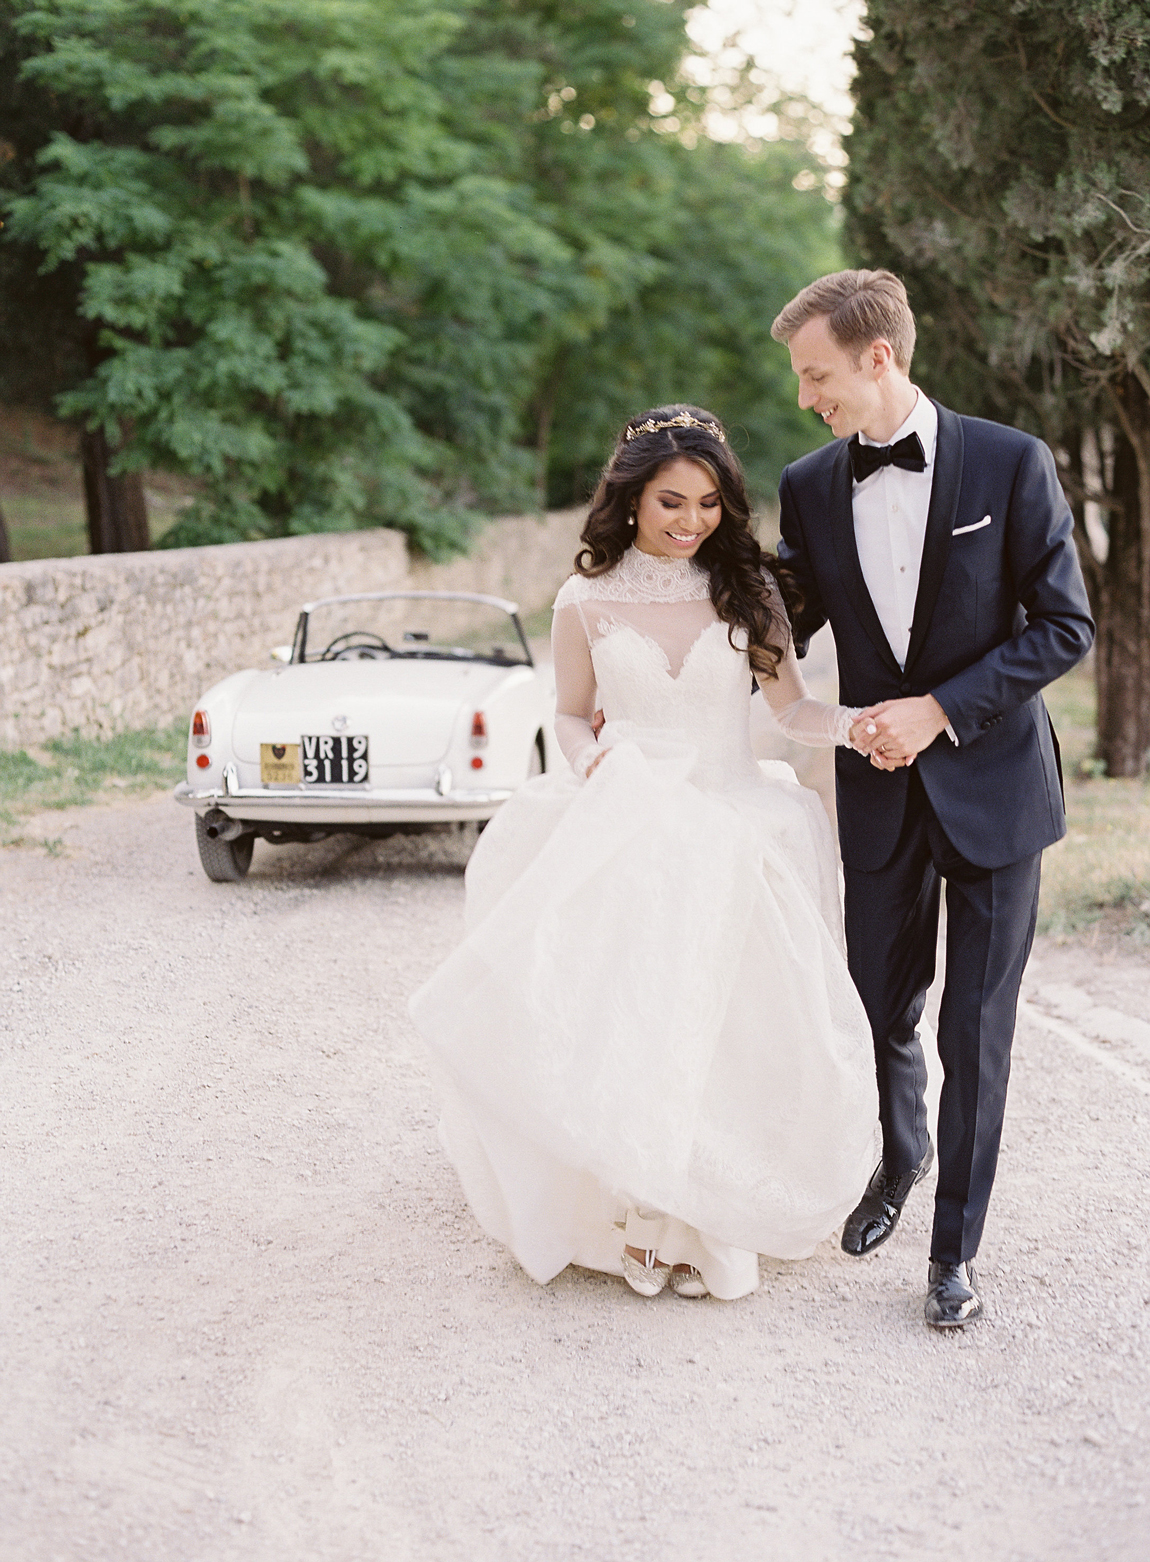 bride and groom hold hands smiling next to vintage white car